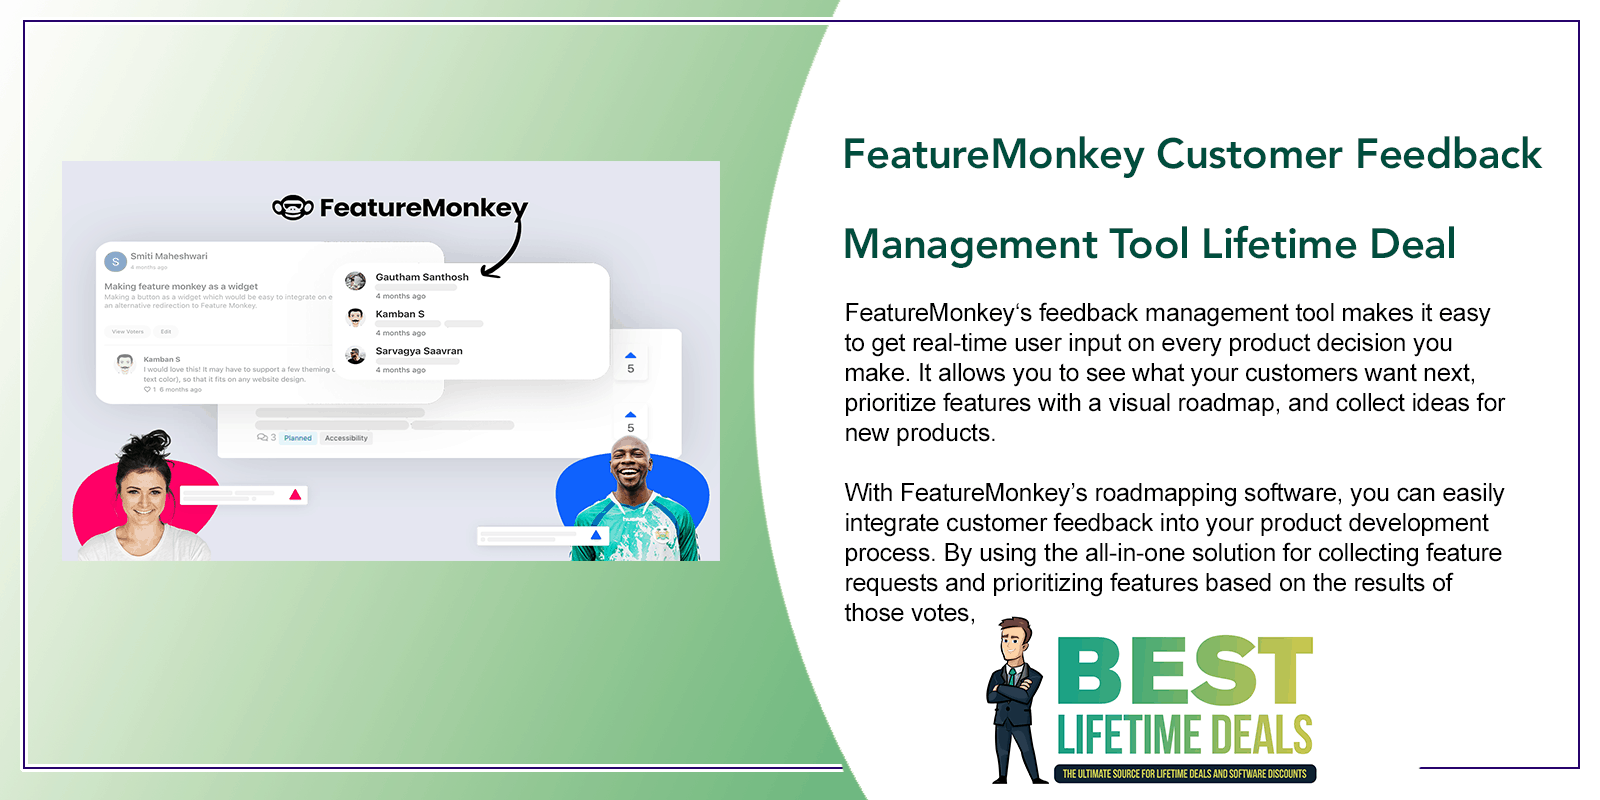 FeatureMonkey Customer Feedback Management Tool Featured Image